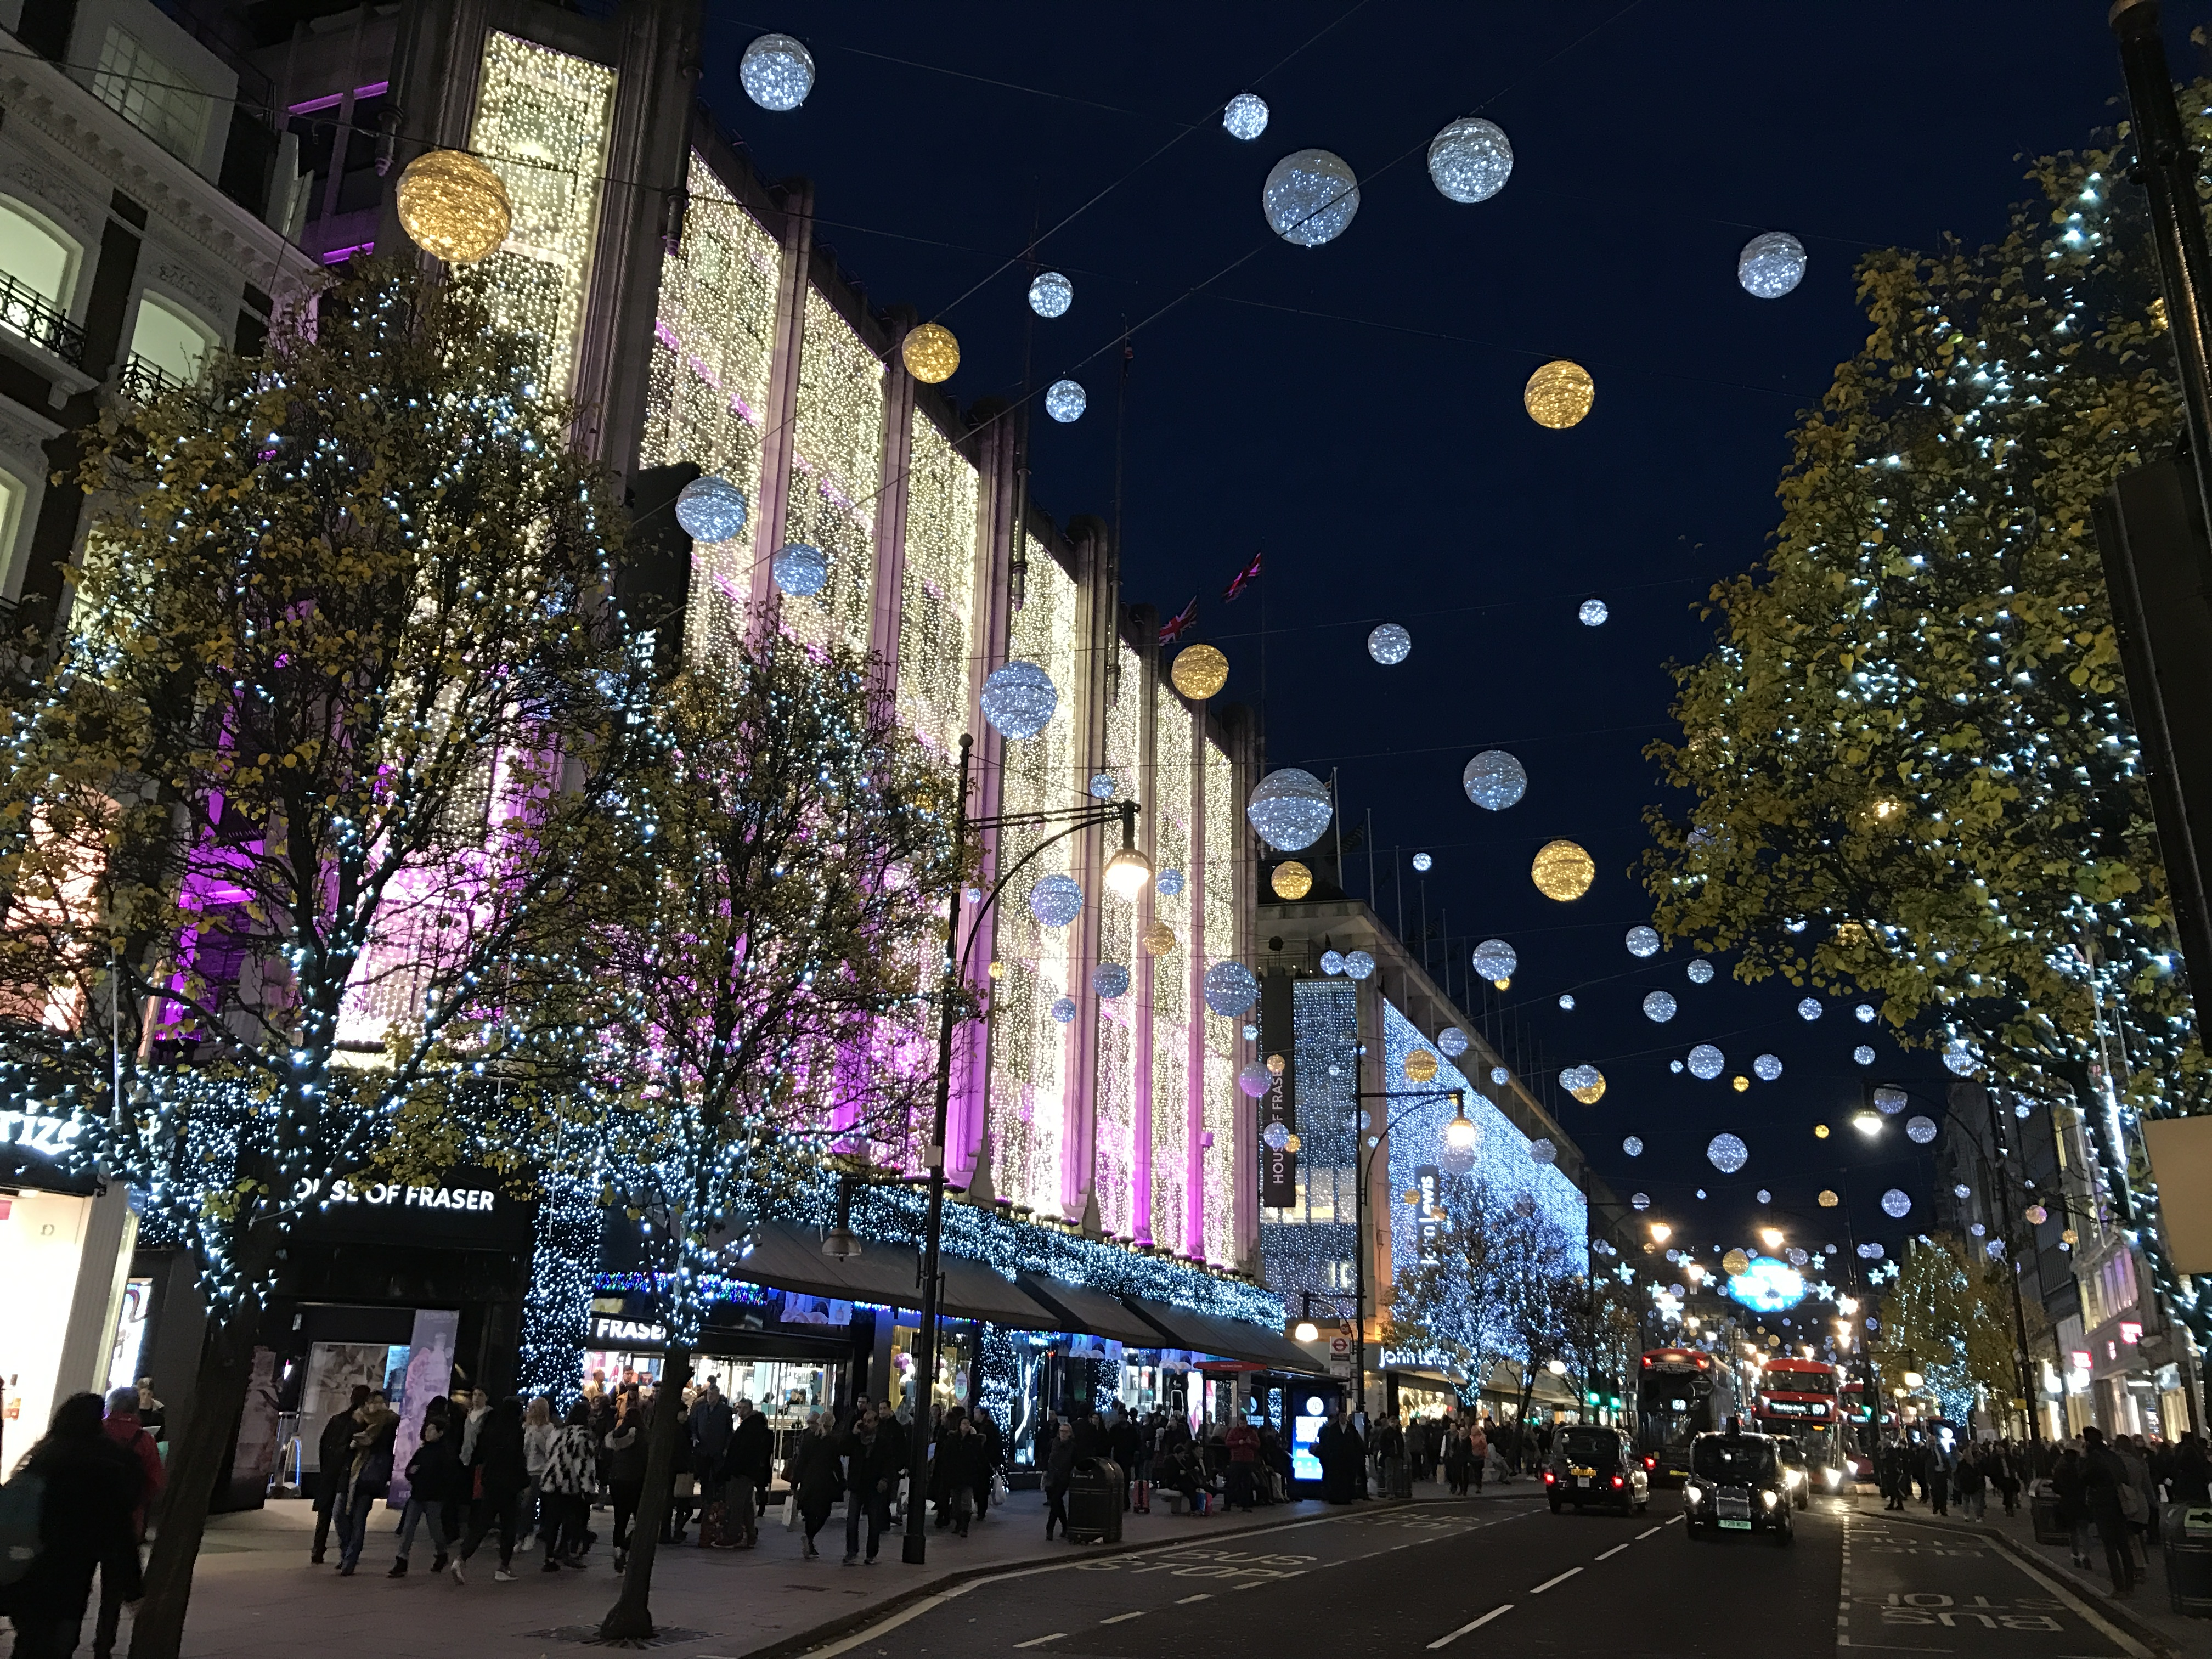 Christmas In London.List Of Oxford Street Christmas Lights Celebrities Wikipedia